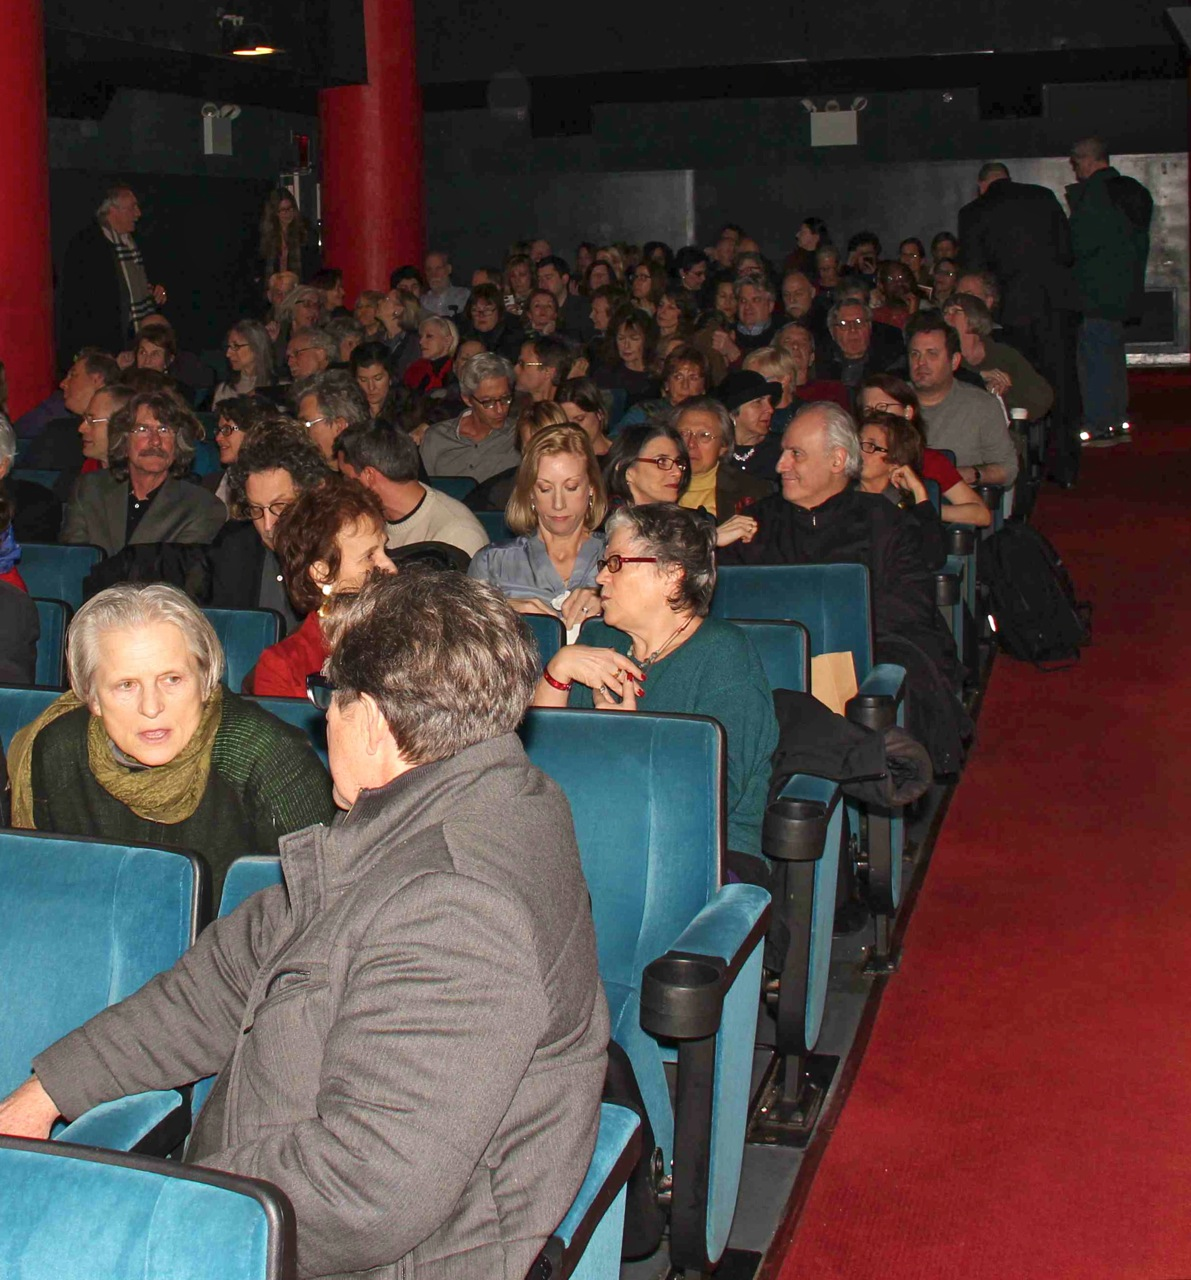 Artists, friends, supporters, and those who participated in the film were out in force during the February 25th screening of Before and After Dinner at Film Forum (Photo by ???)